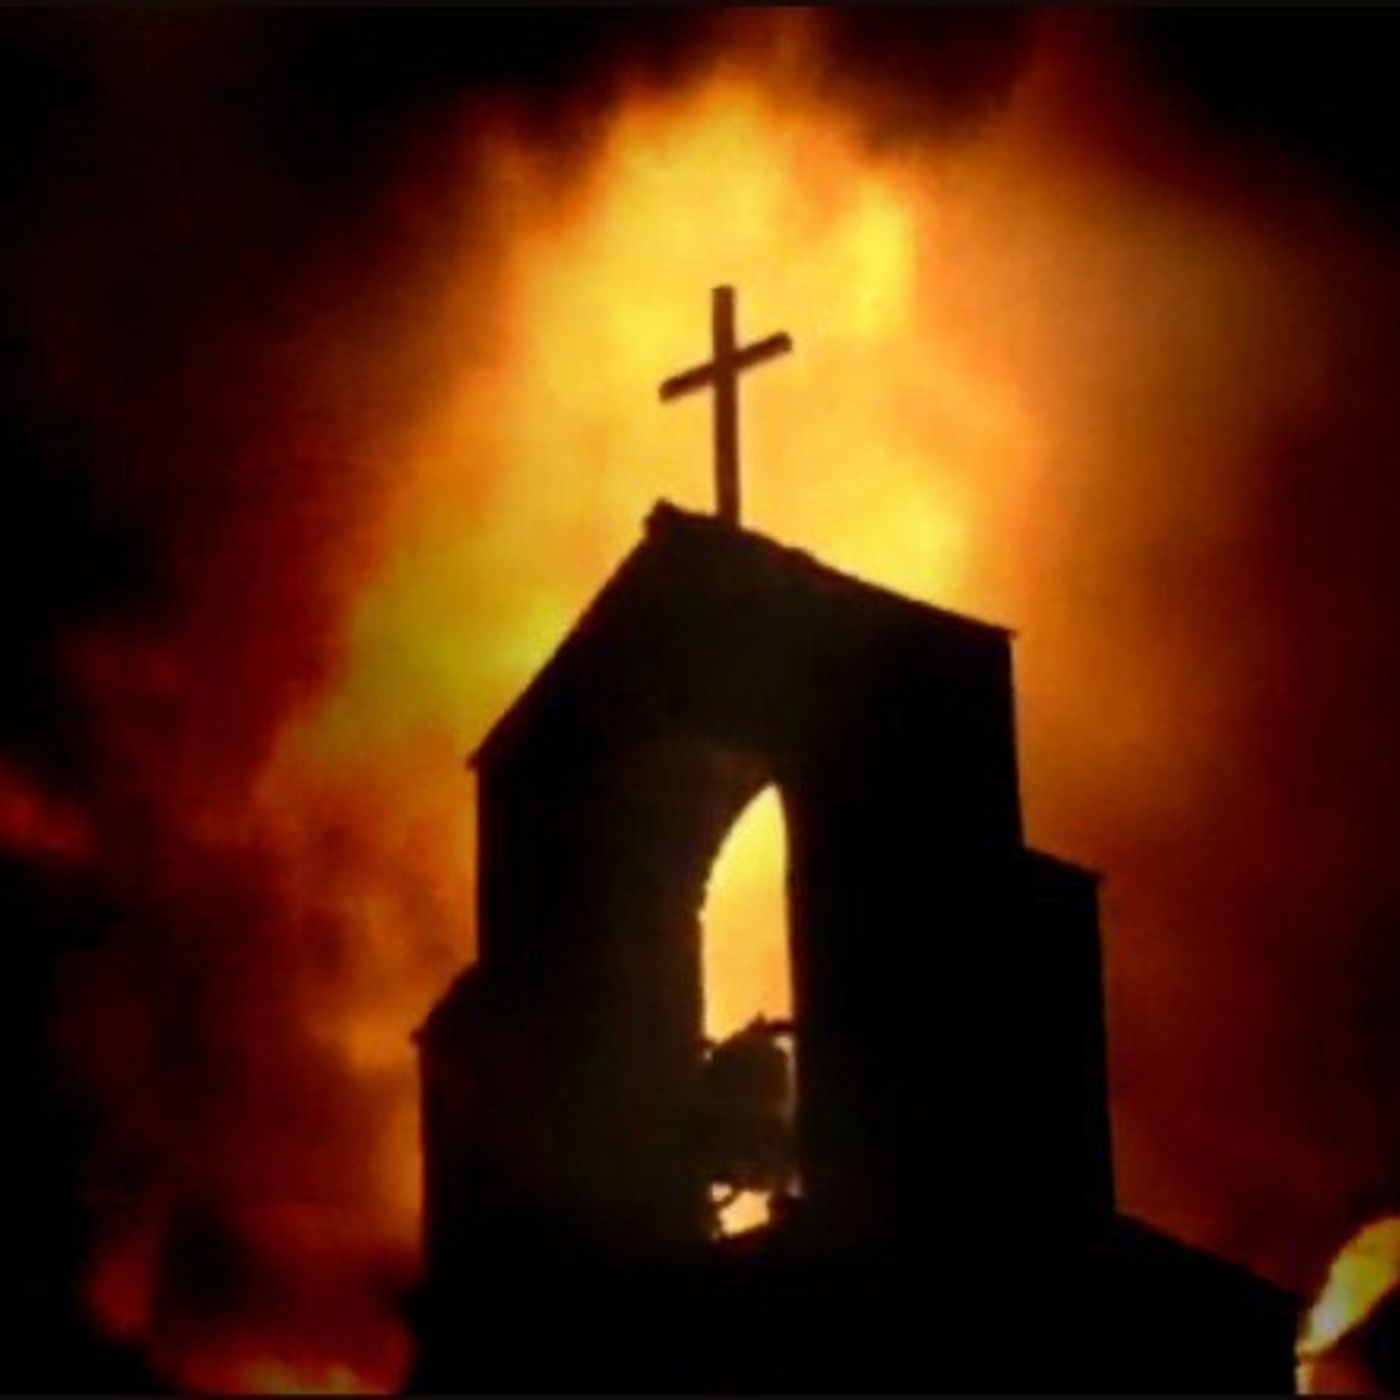 Christianity now most persecuted religion in the world